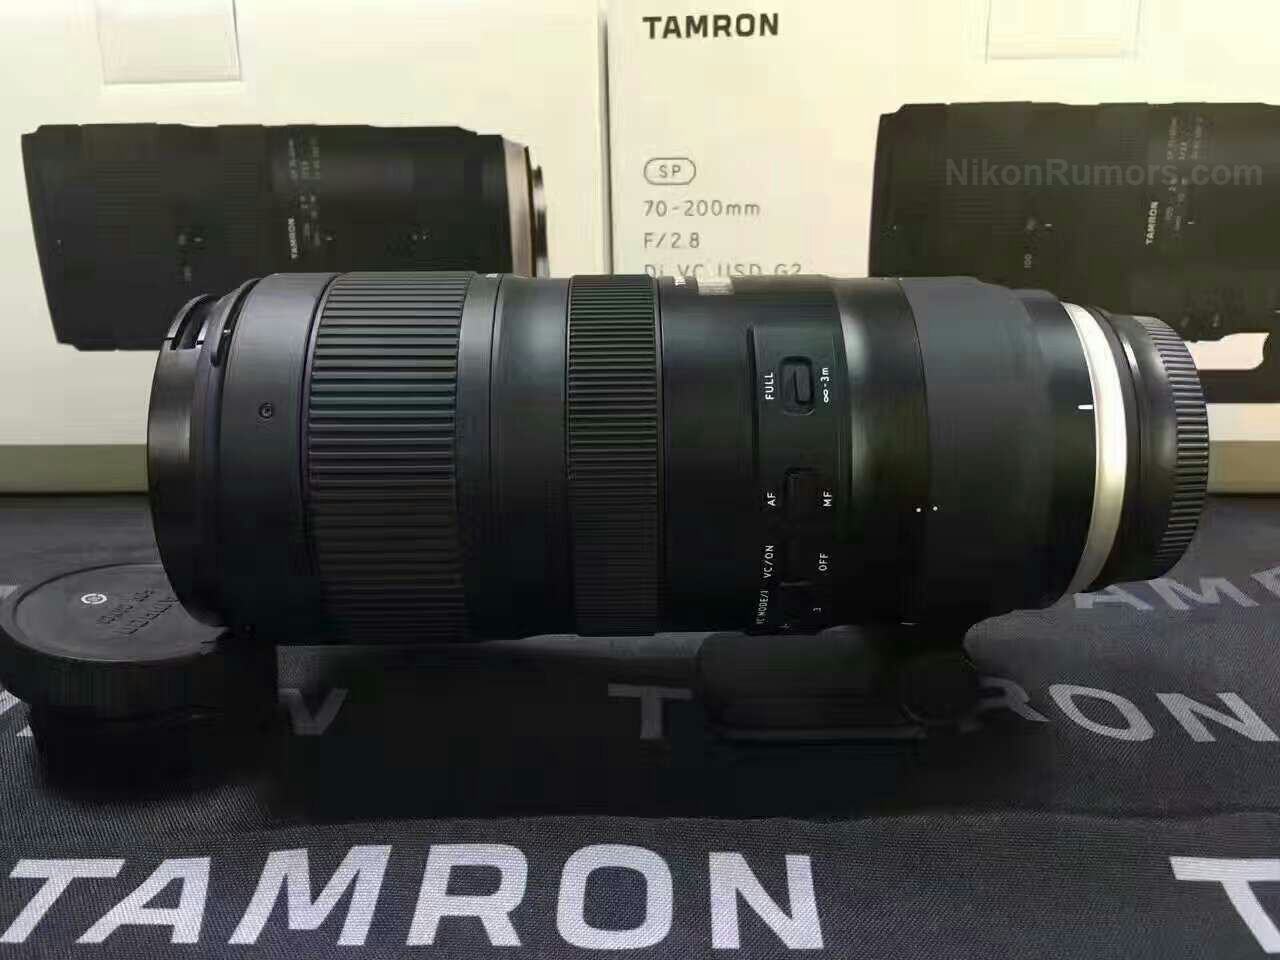 New Tamron Sp 70 200mm F 28 Di Vc Usd G2 Lens Rumored To Be For Canon 18 35 63 Iii Eos M A Is Announced Next Month During The Cp Show In Japan As Replacement Current